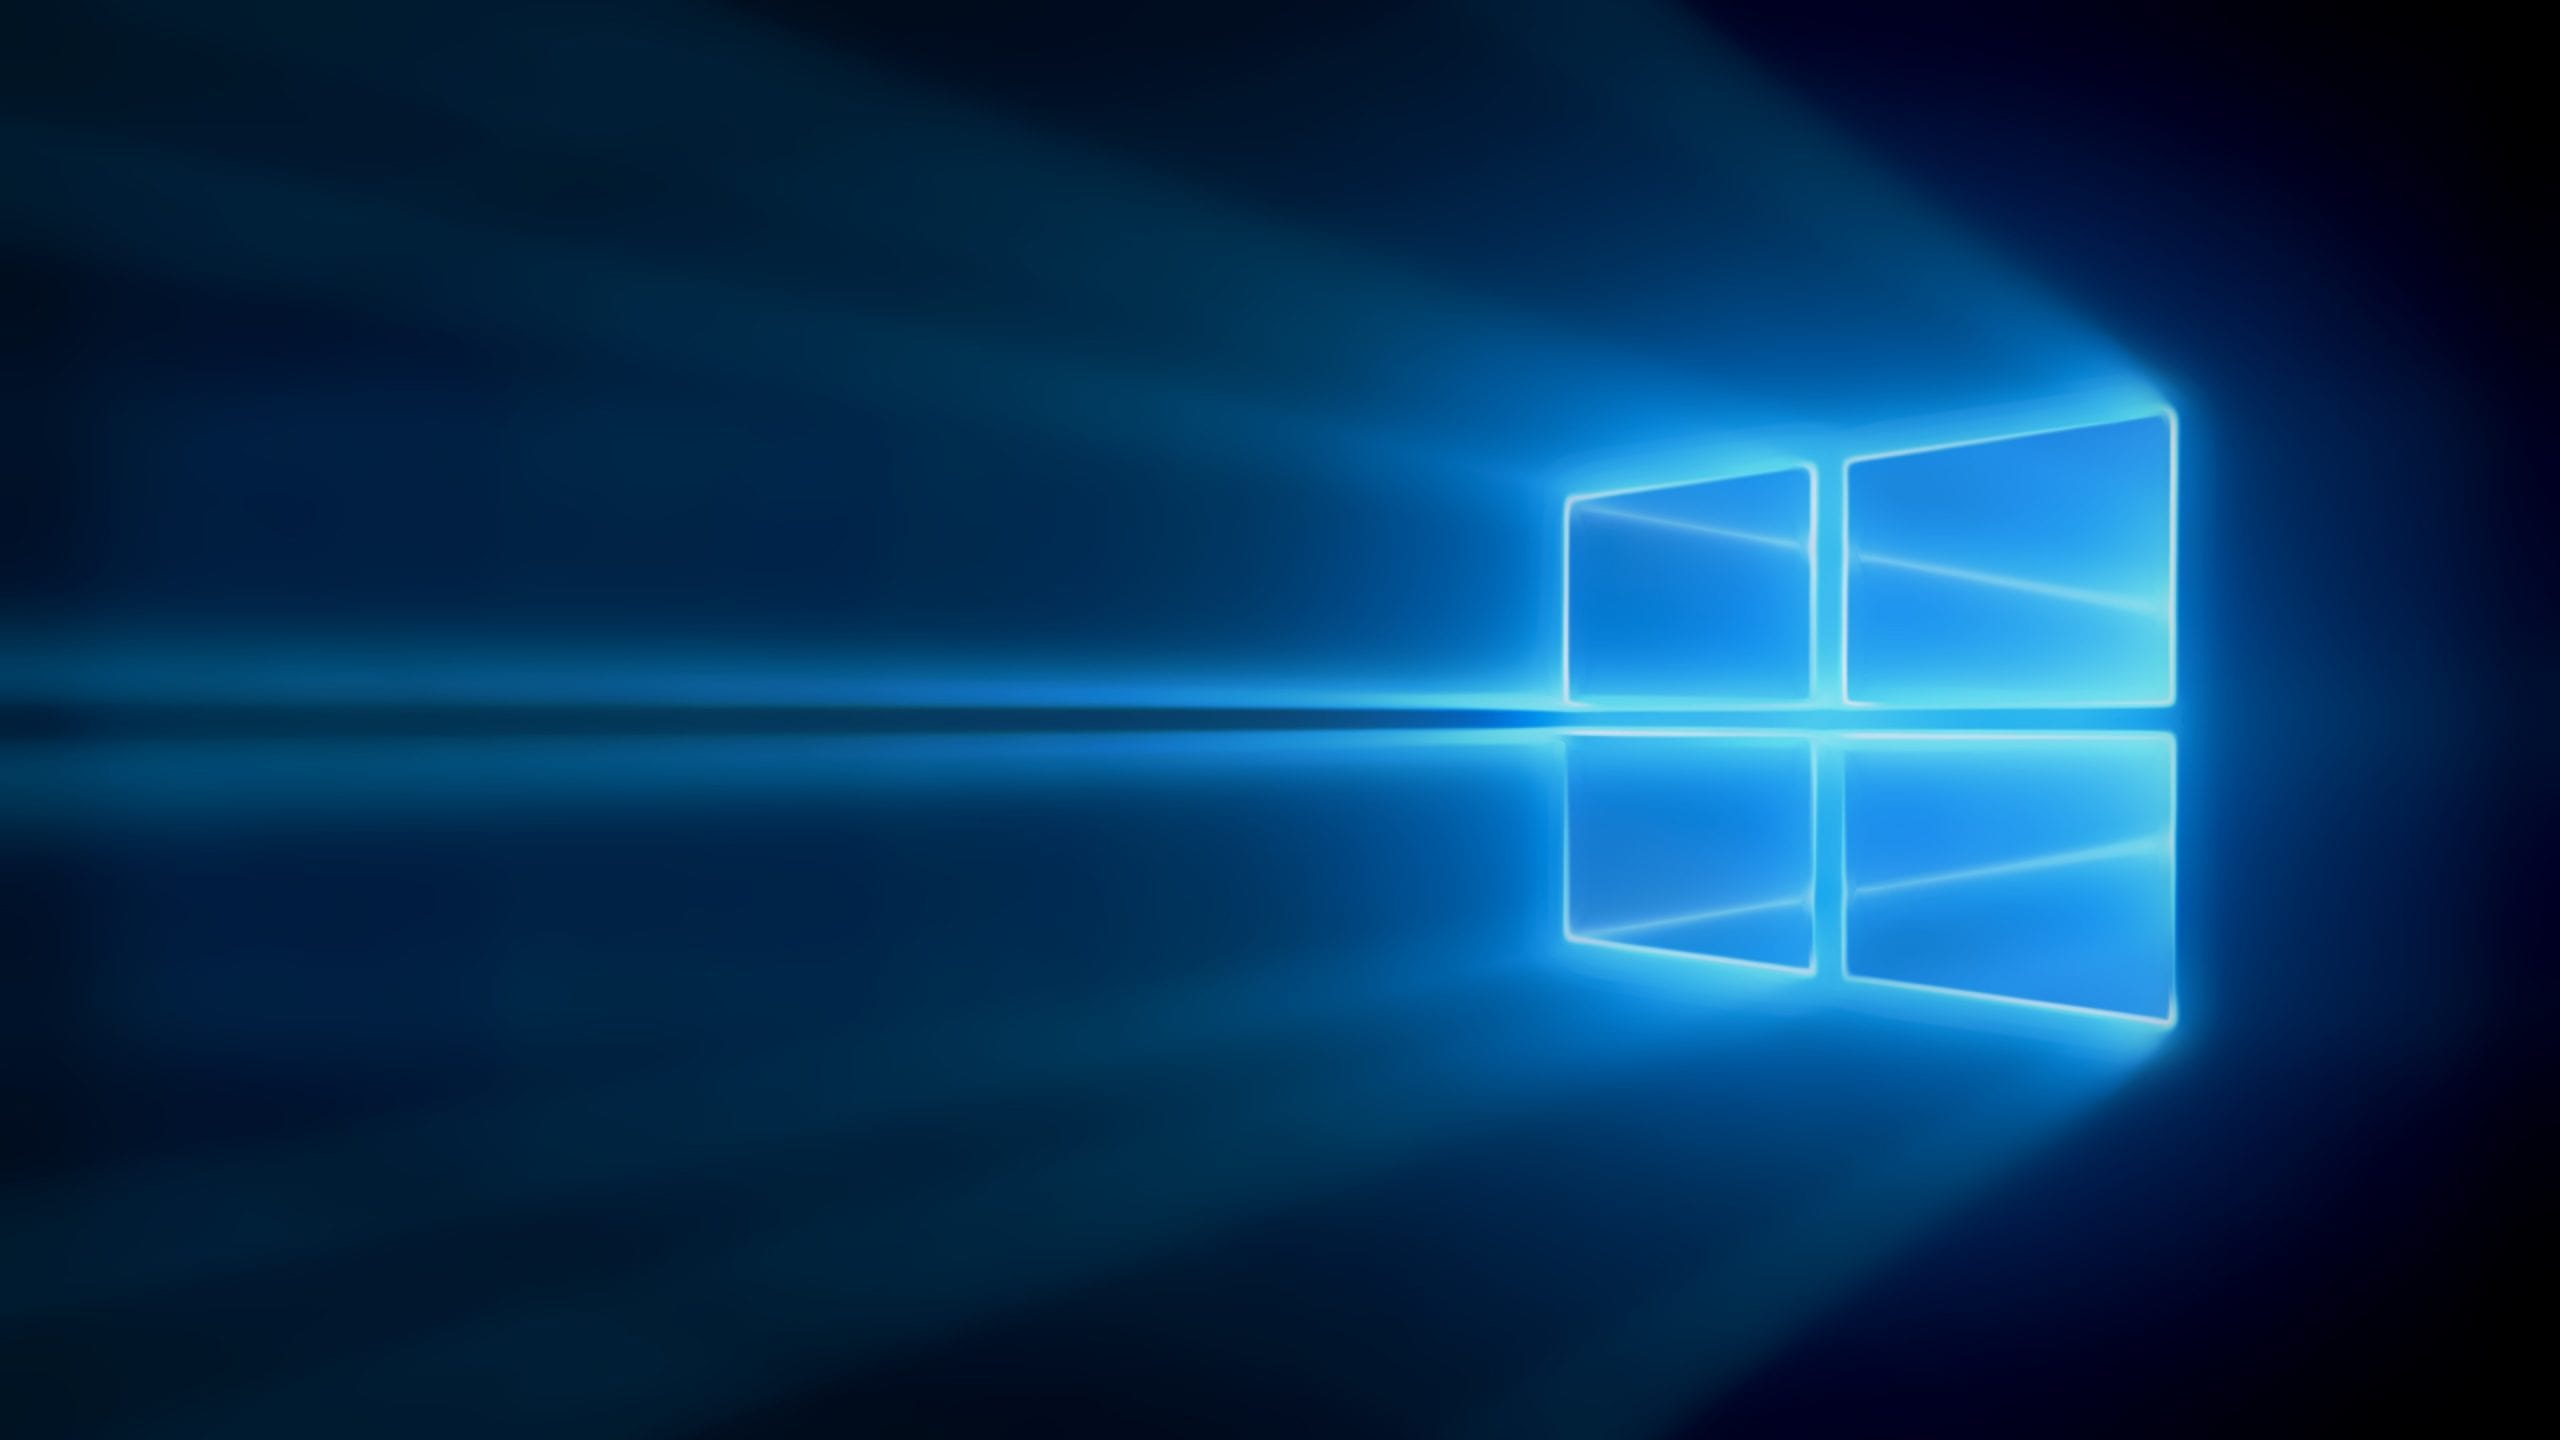 Windows 10 creator update privacy instellingen aanpassen